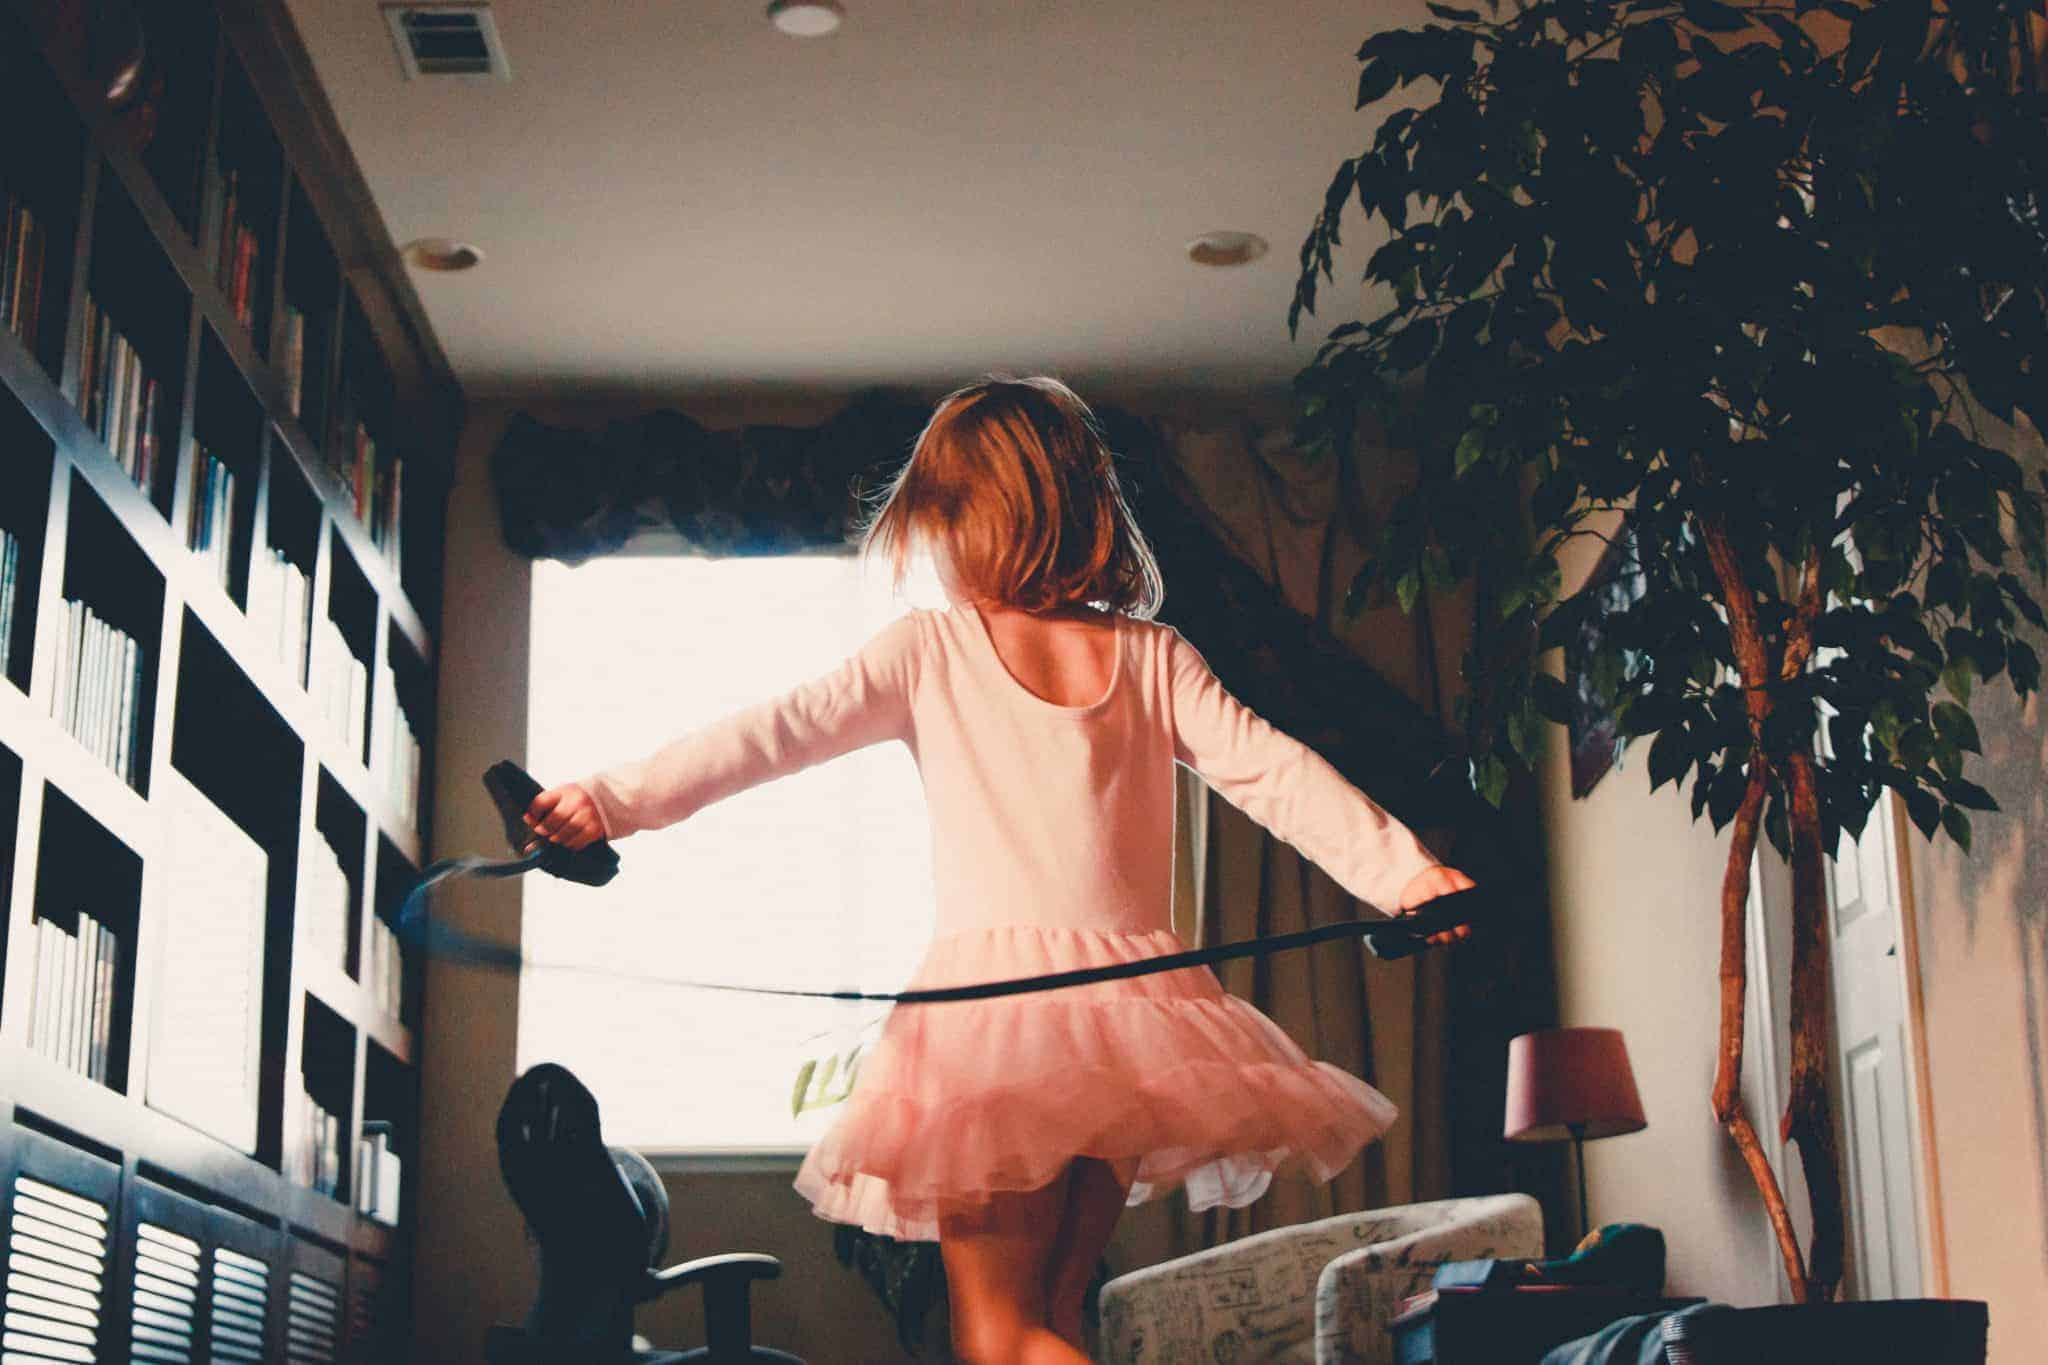 A little girl in a pink tutu dress, swing a jump rope behind her back in the family reading room.